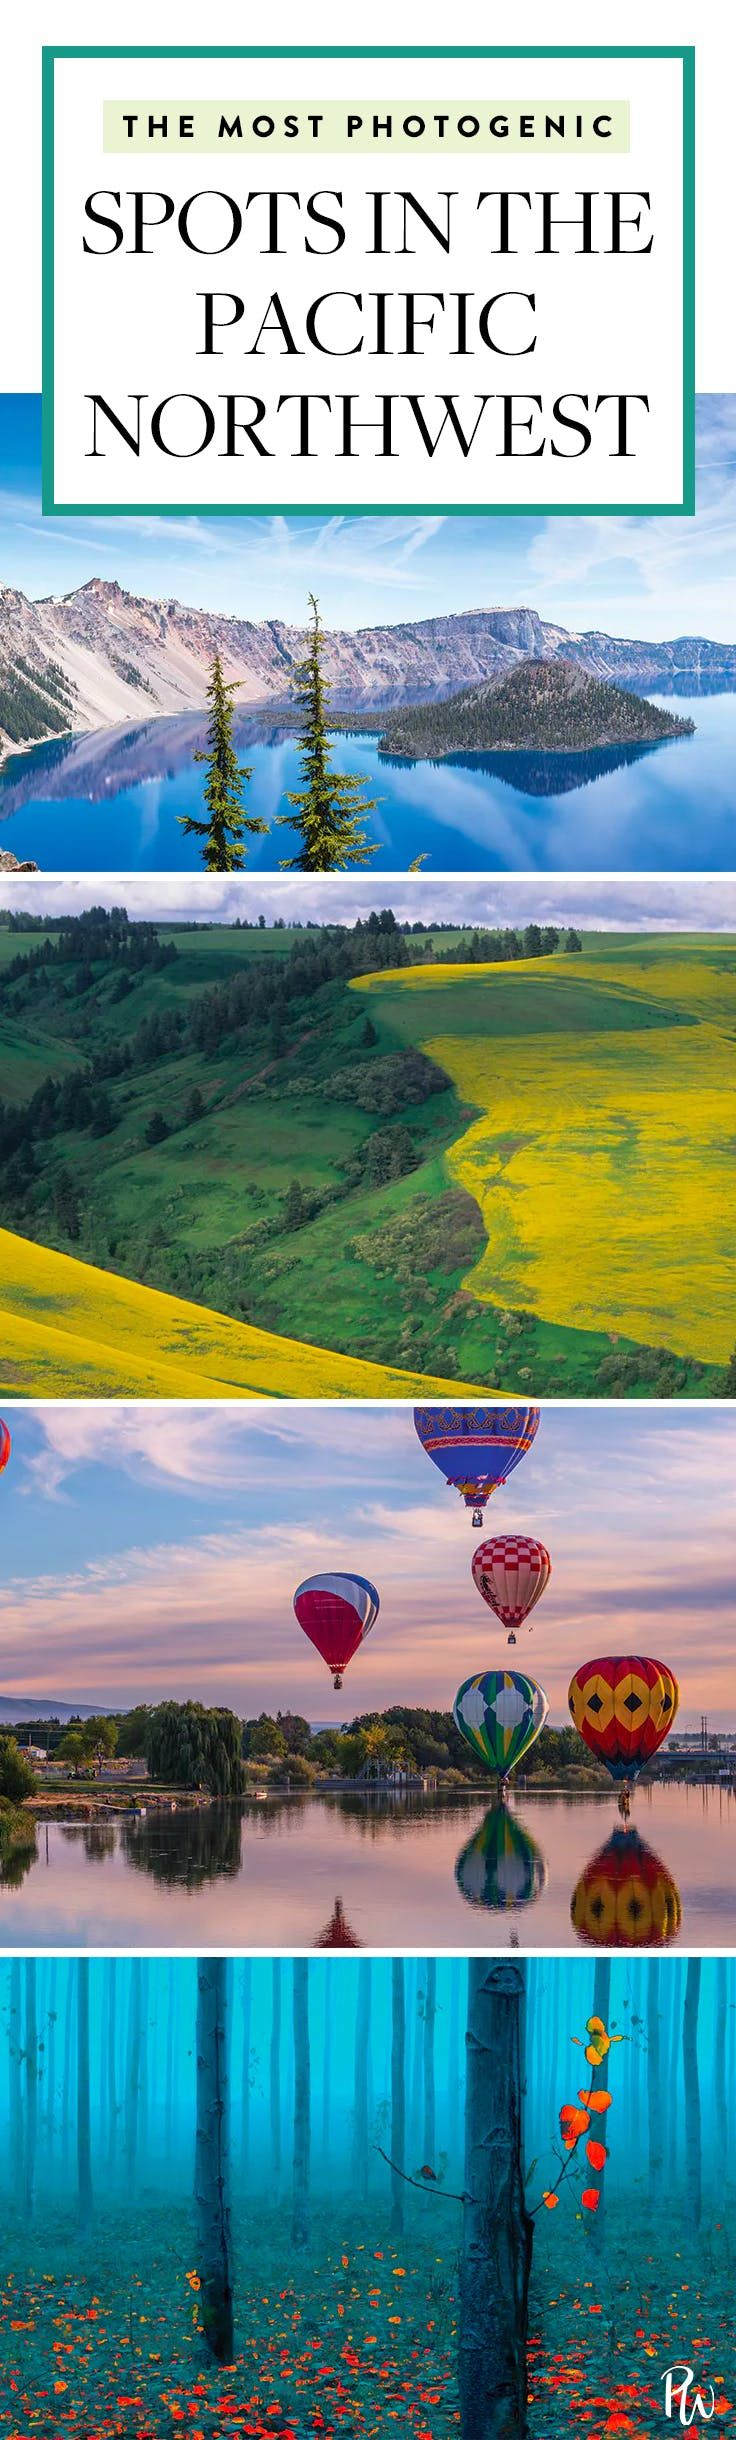 The 8 Prettiest and Most Photogenic Spots in the Pacific Northwest via @PureWow